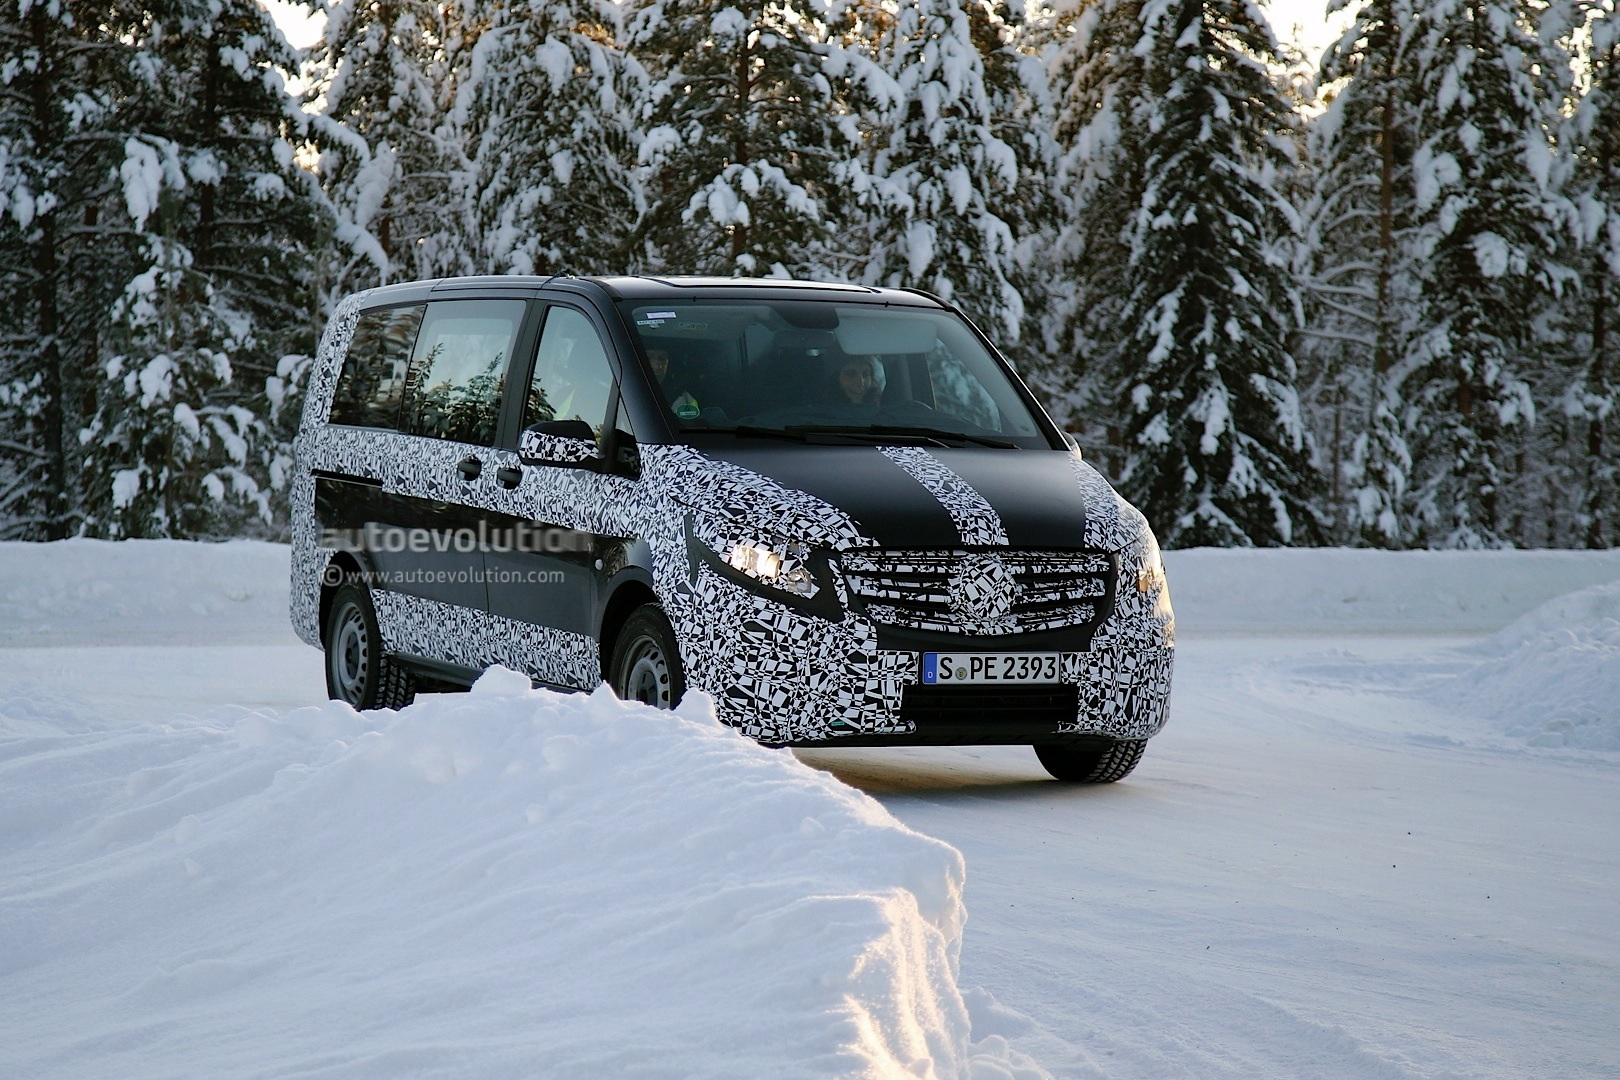 2014 - [Mercedes] Classe V/Vito - Page 5 2015-mercedes-benz-v-class-spied-winter-testing-photo-gallery_1